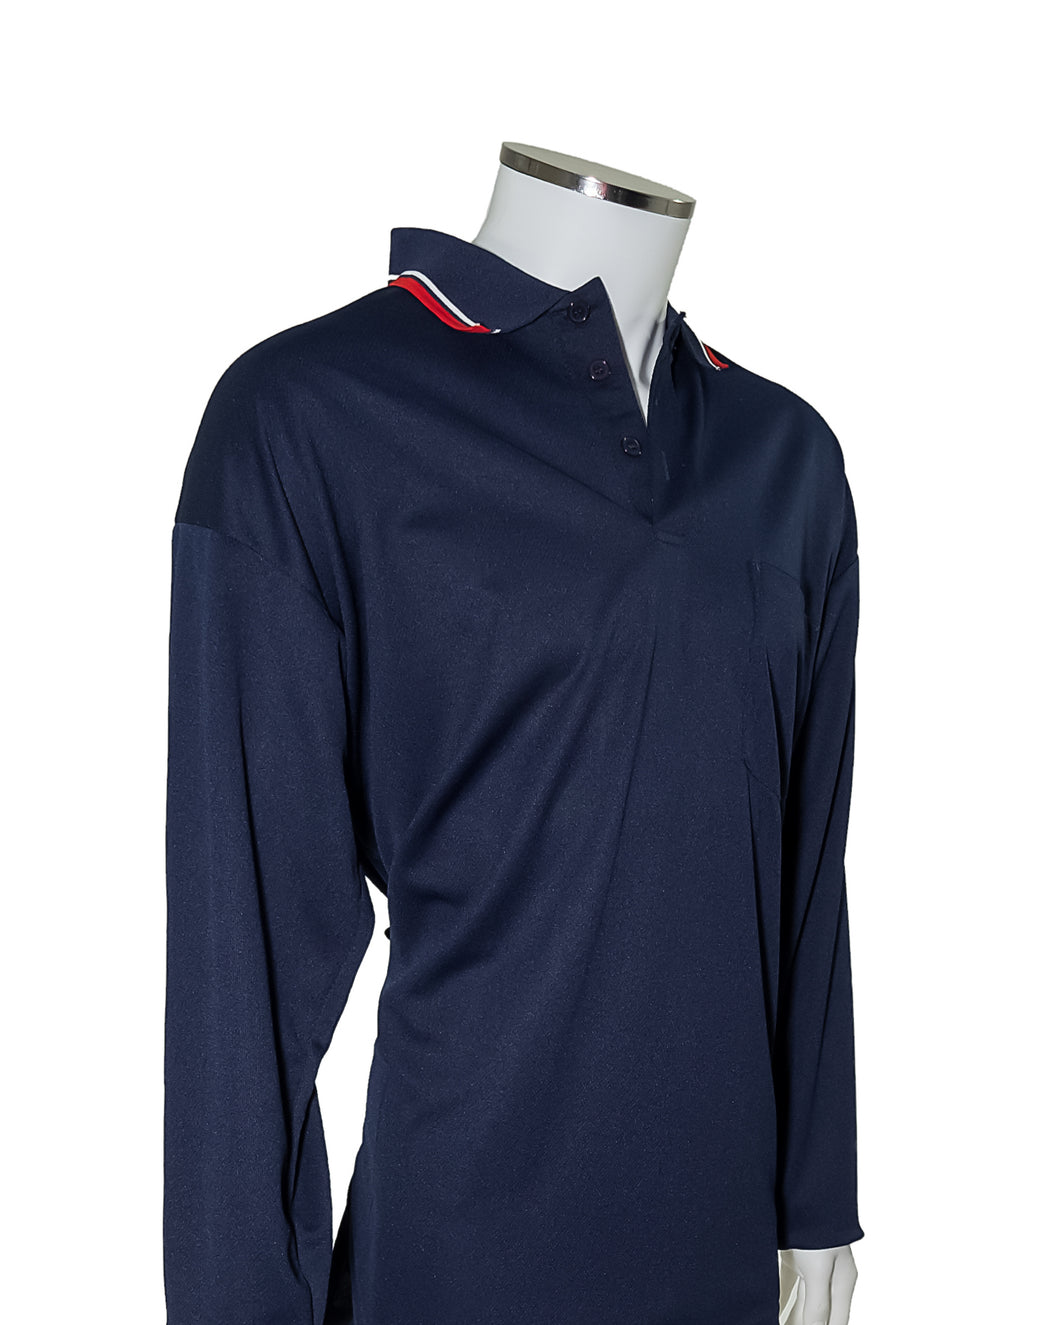 Major League Umpire Shirt - Long Sleeve Navy - Officials Depot